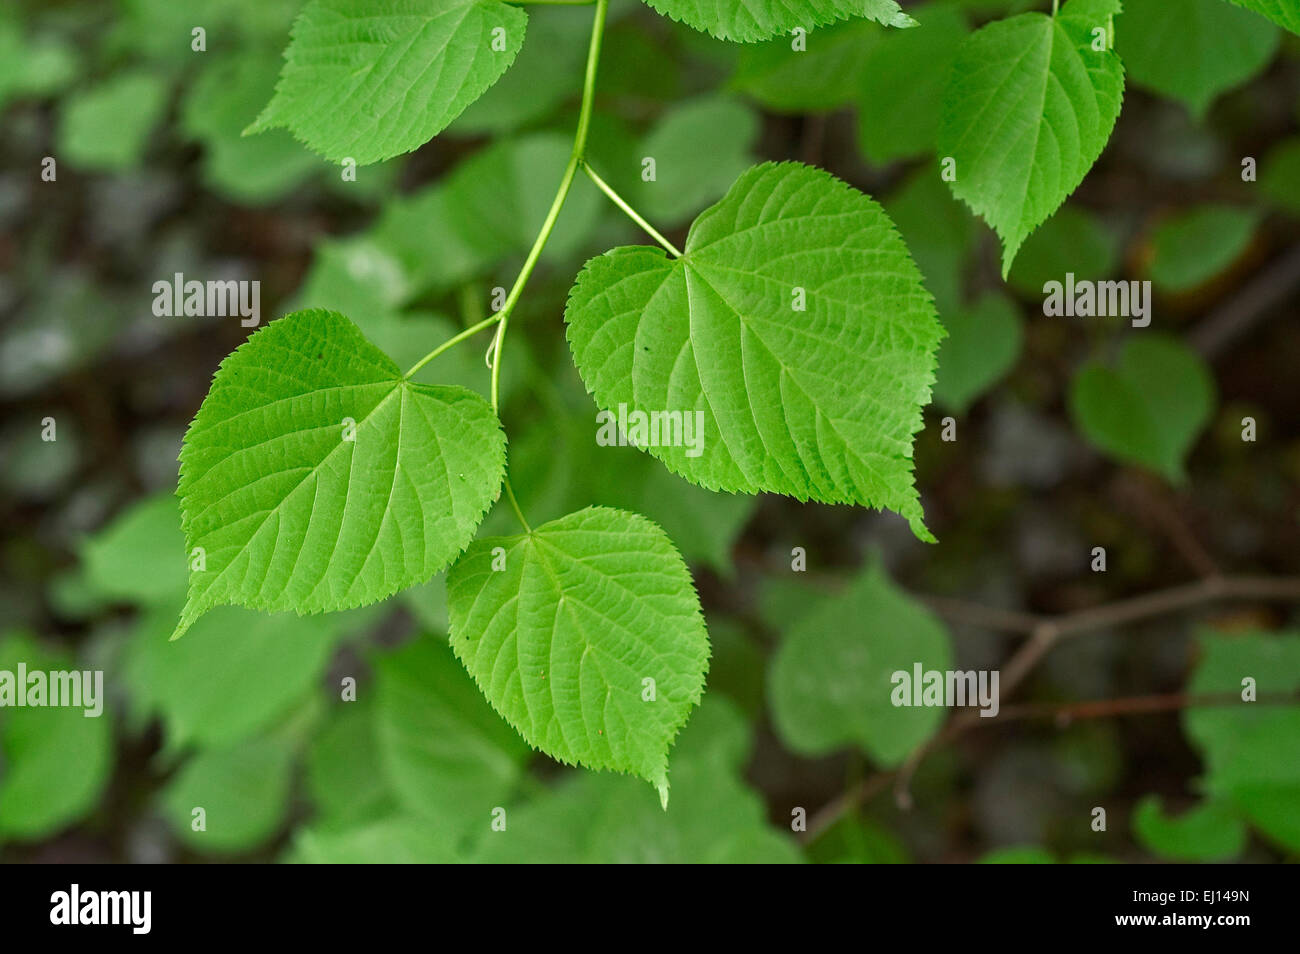 Large-leaved linden / large-leaved lime (Tilia platyphyllos) close up of leaves Stock Photo